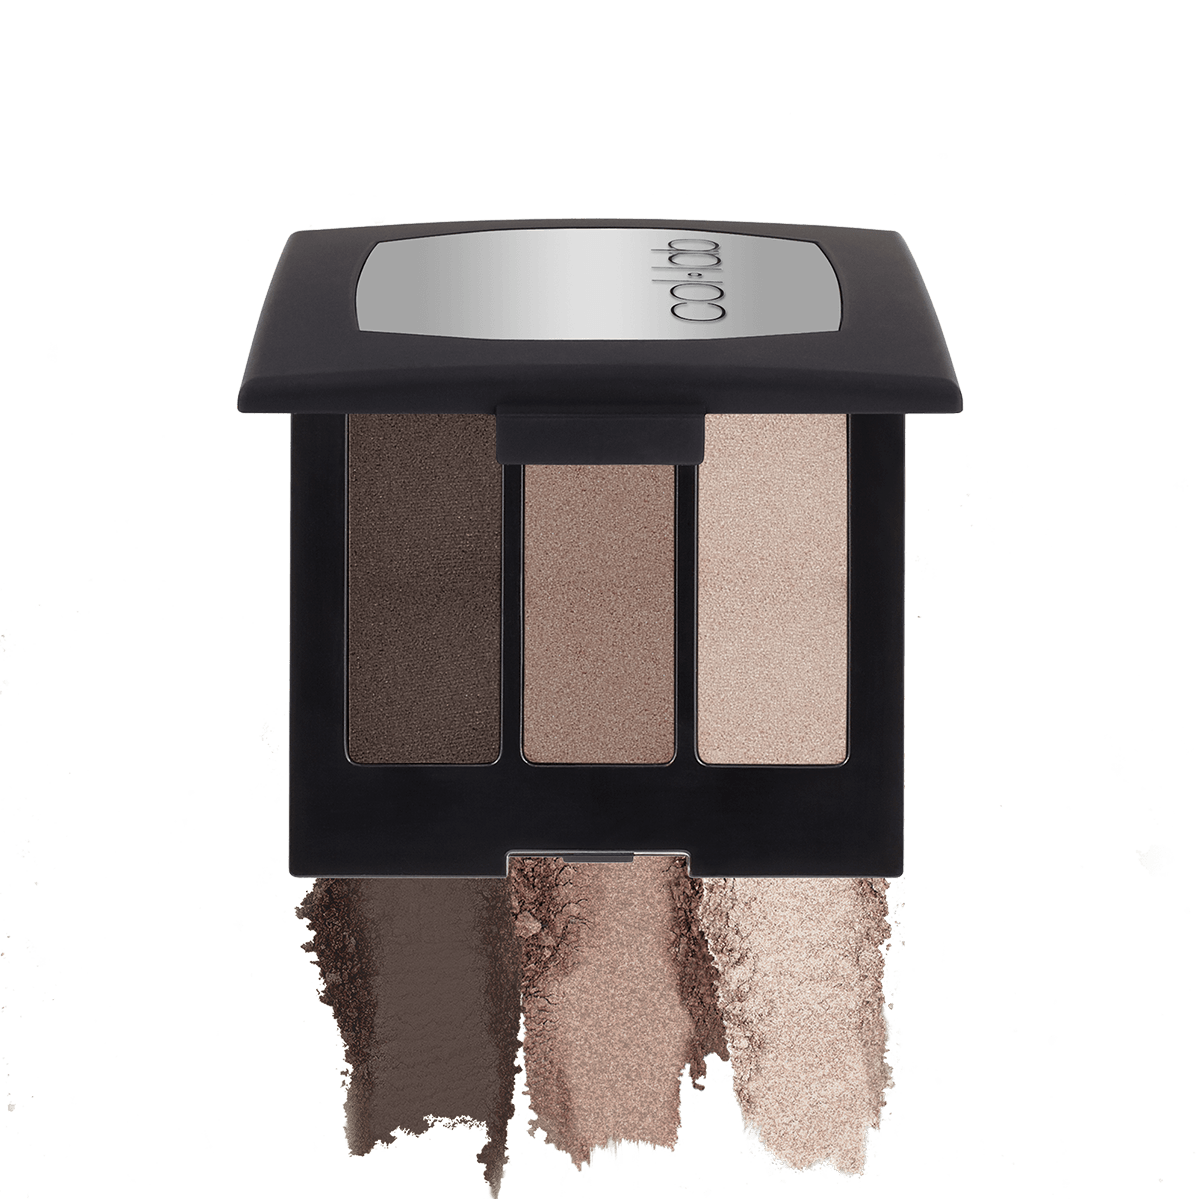 collab-palette-pro-mini-glamsquad-shade.png